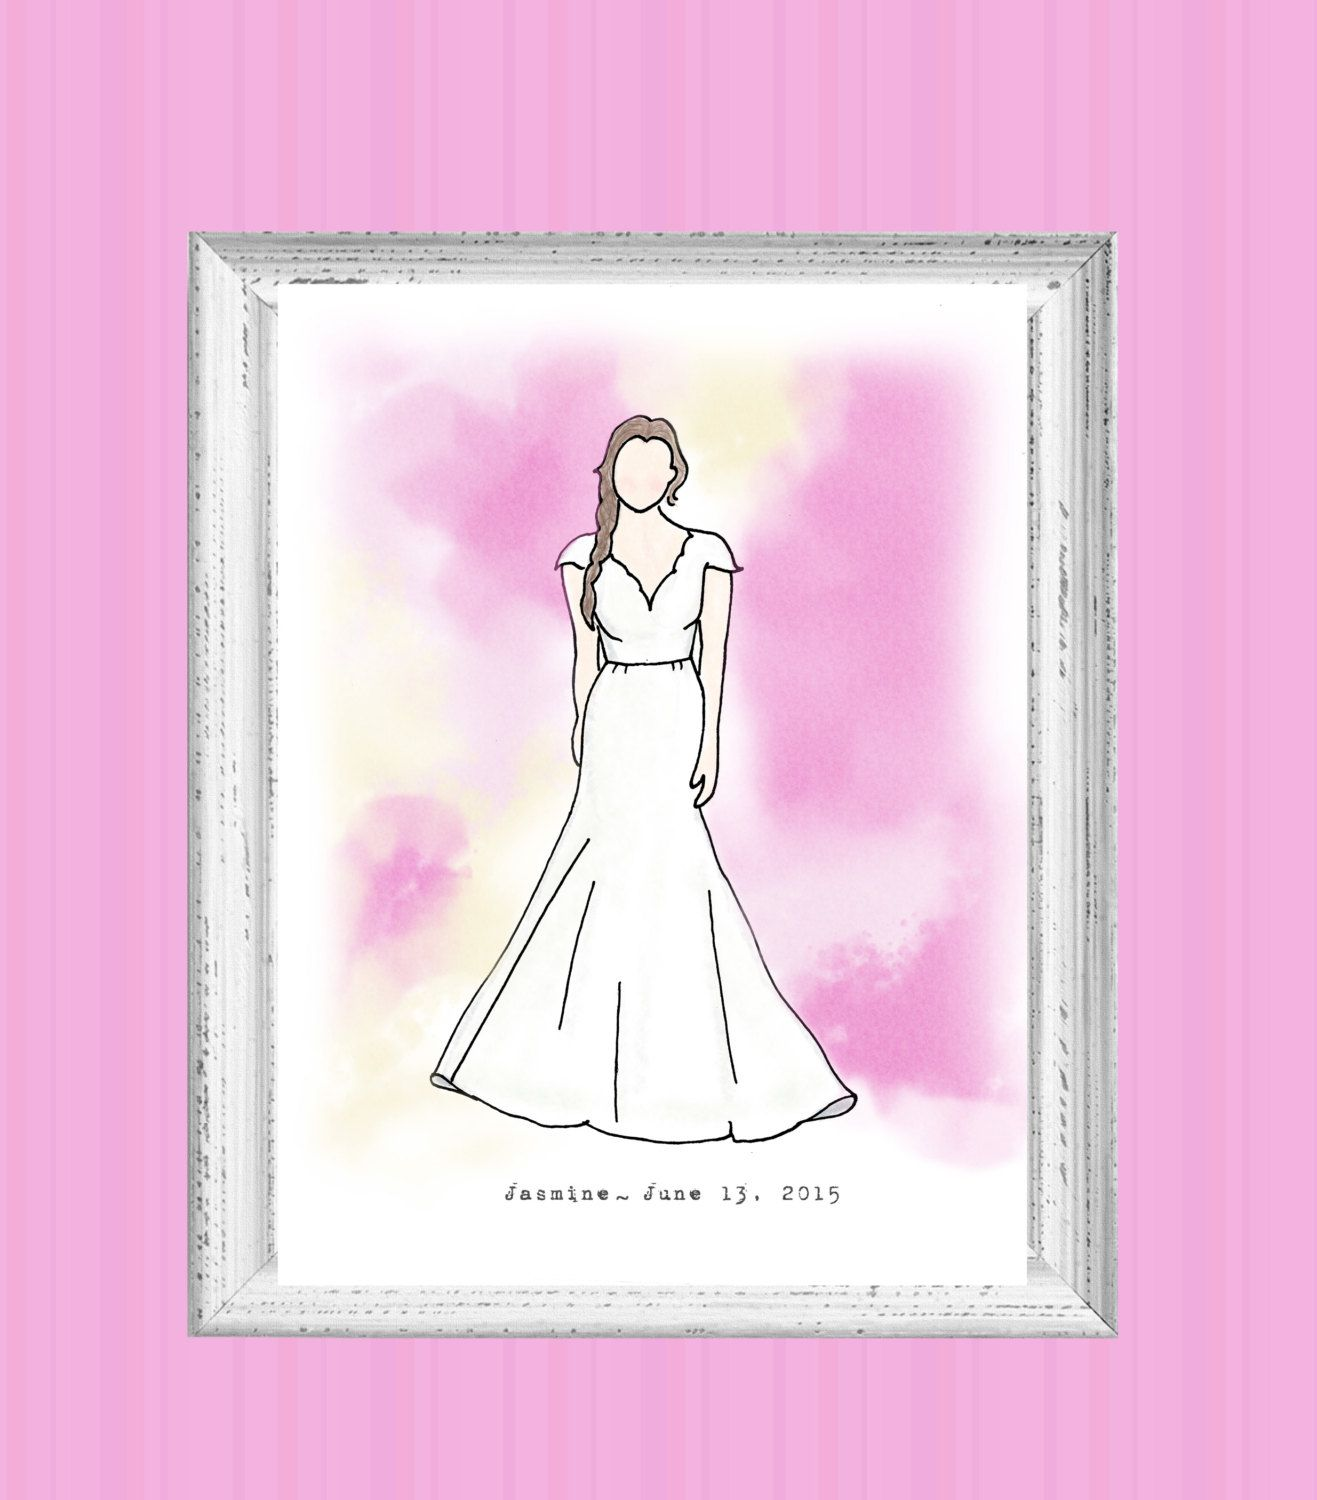 Personalized bridal gown sketch custom wedding by edandedith 赤脚